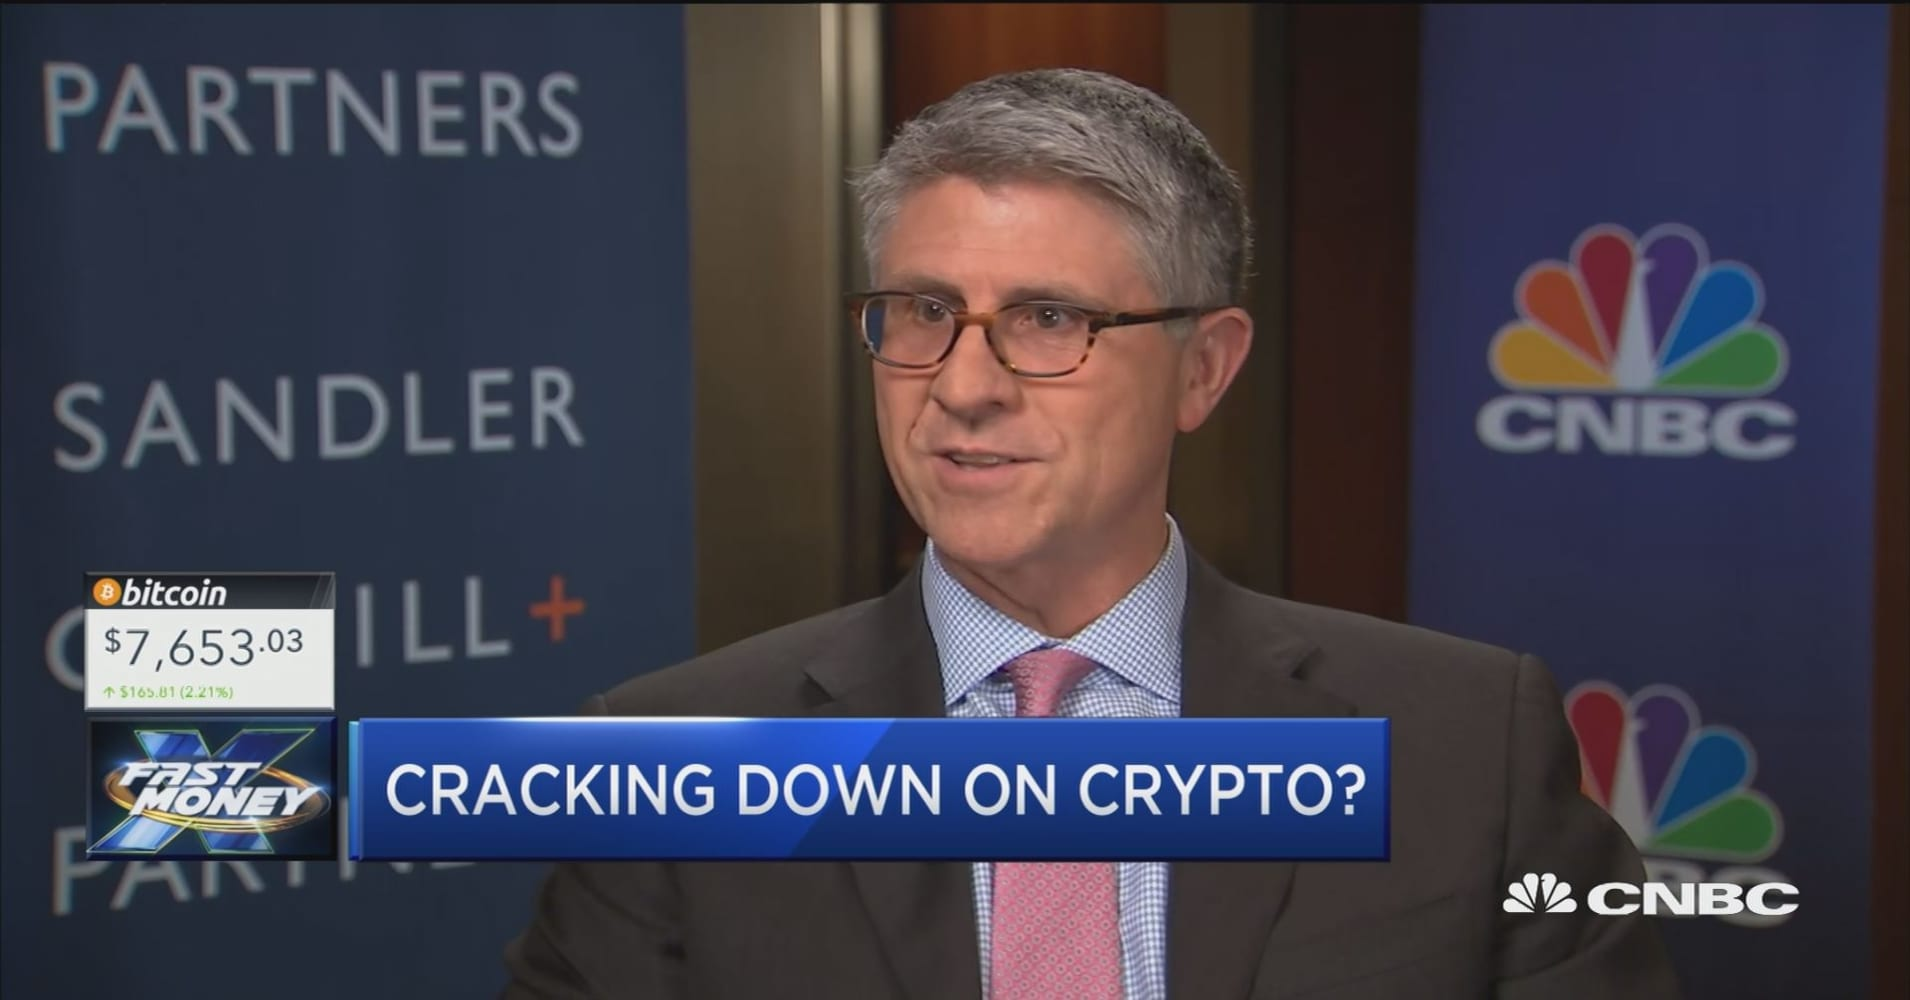 Here's what the SEC's trading and markets division director had to say about the crypto market